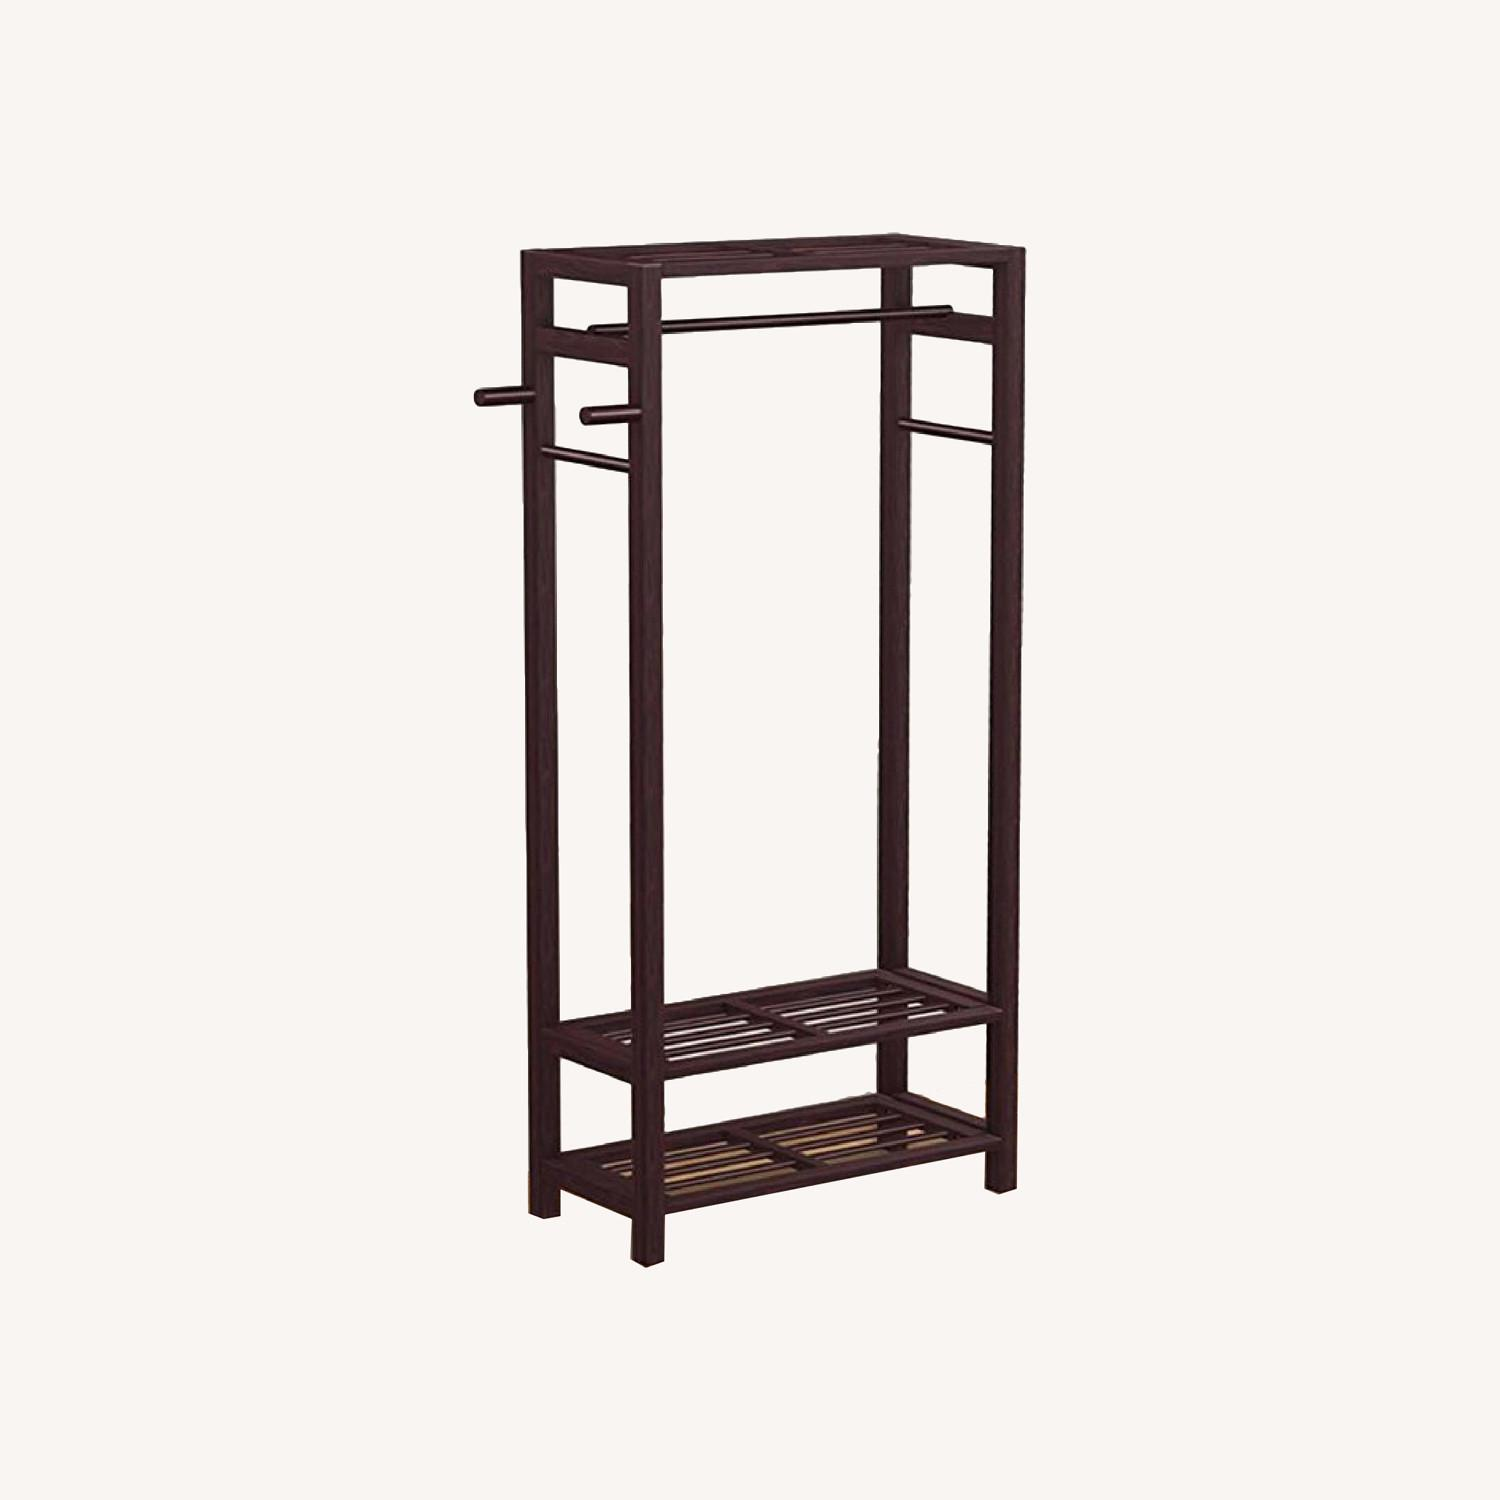 Wayfair Free Standing Coat Rack - image-0